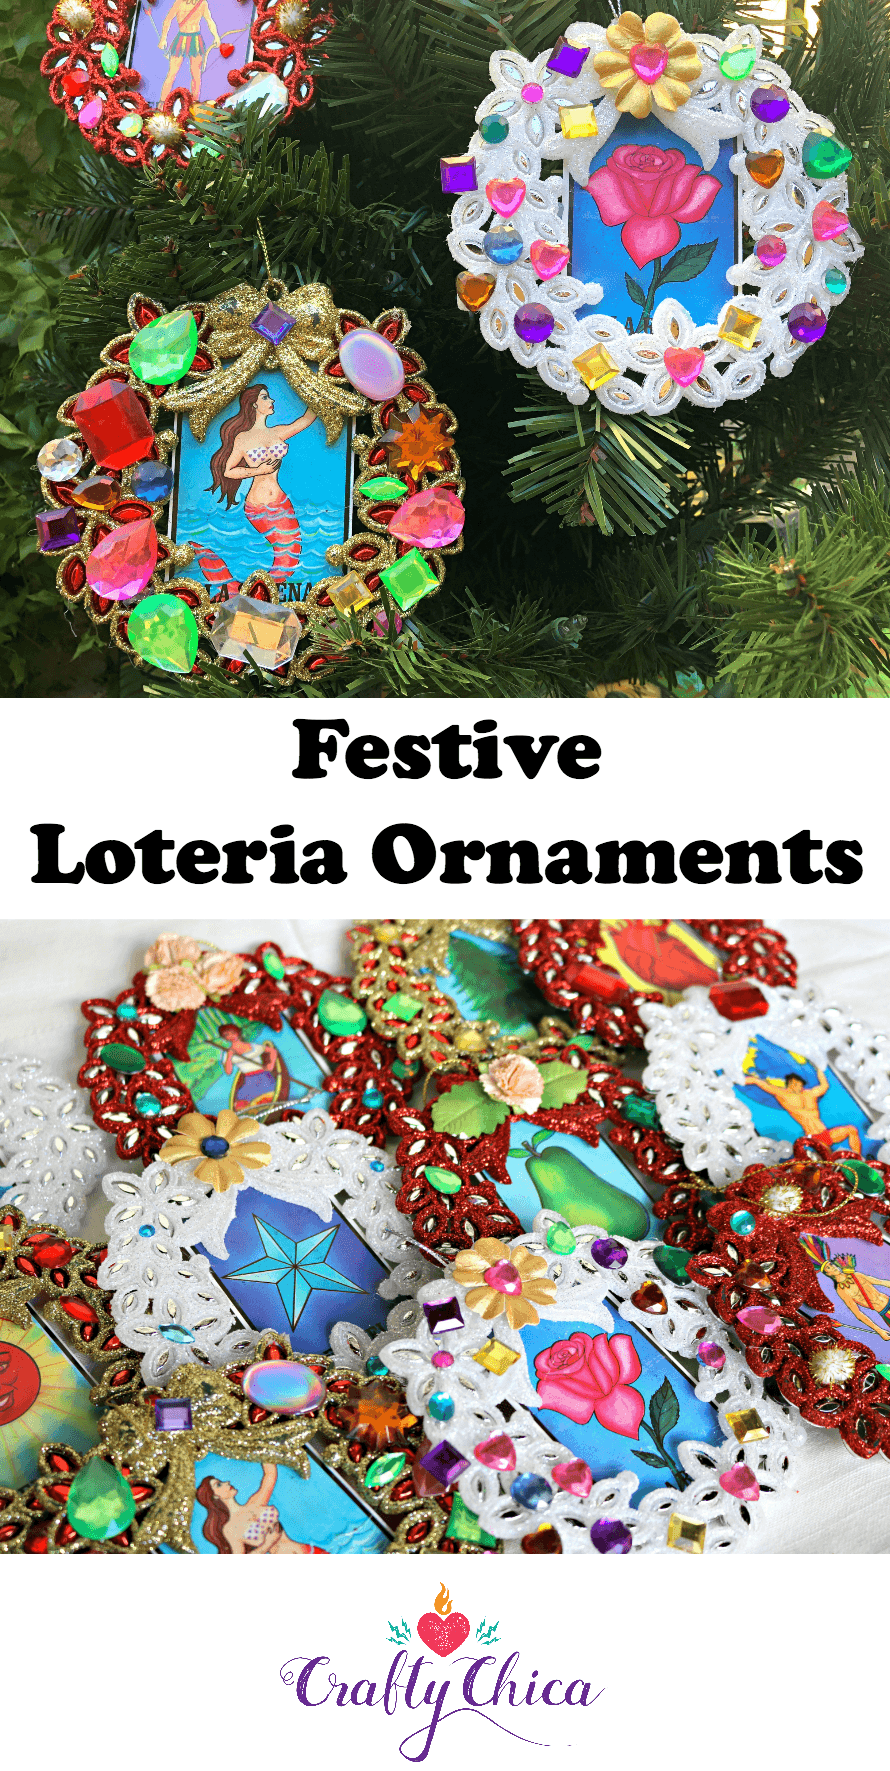 Loteria ornaments by CraftyChica.com